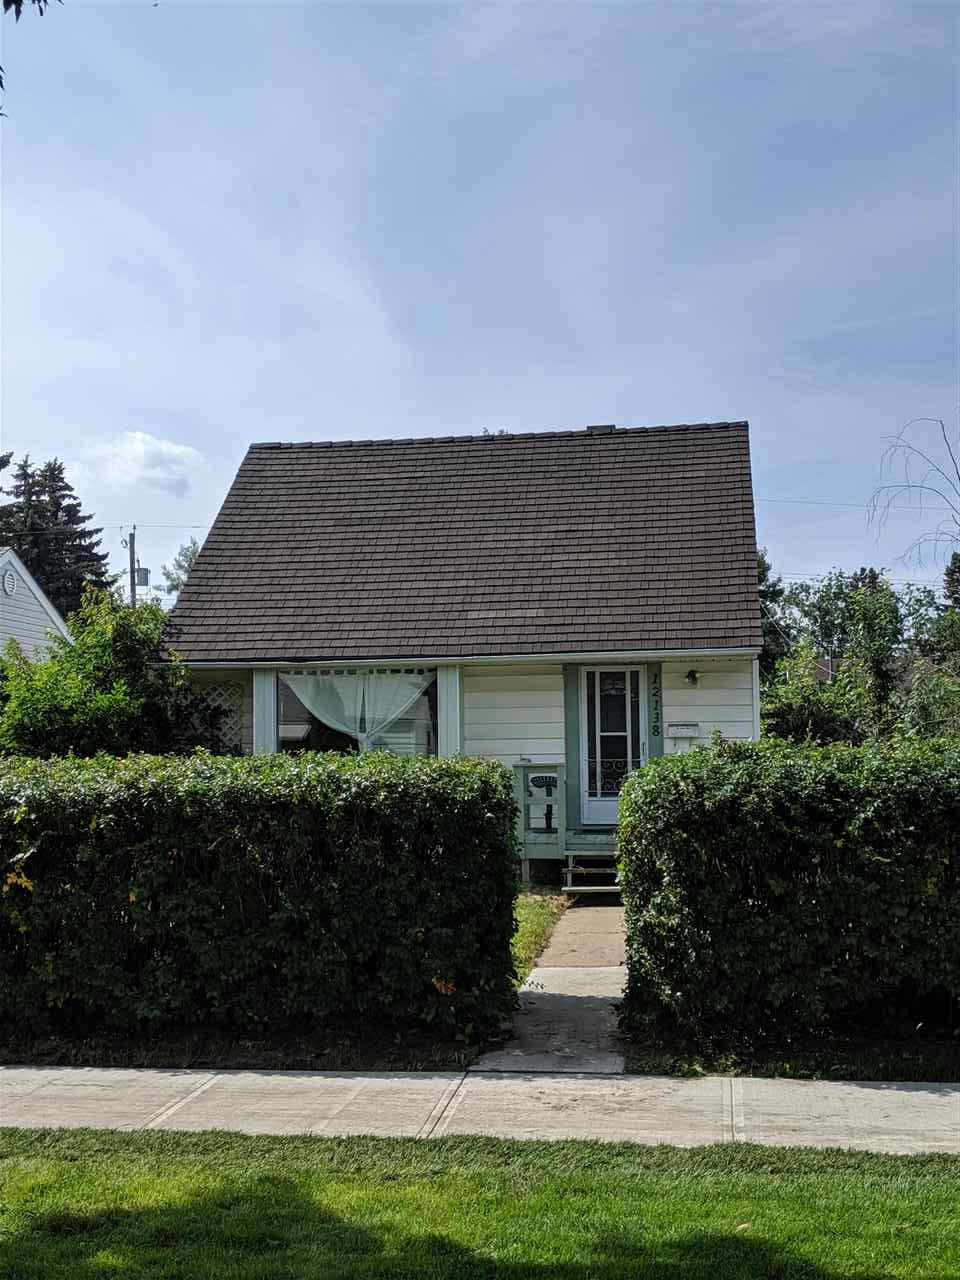 This 925 sqft semi bungalow has fresh paint and laminate floors throughout.  The 4 piece bathroom is newer as well, which helps make this a perfect starter home, or investment property.  The lot is zoned RF3 and is 571m2 or 41ft x 150ft.  One block from an elementary school with a large playground and sports field, and easy access to transportation. Was rented for $1350 per month this year, which is an amazing cap rate.